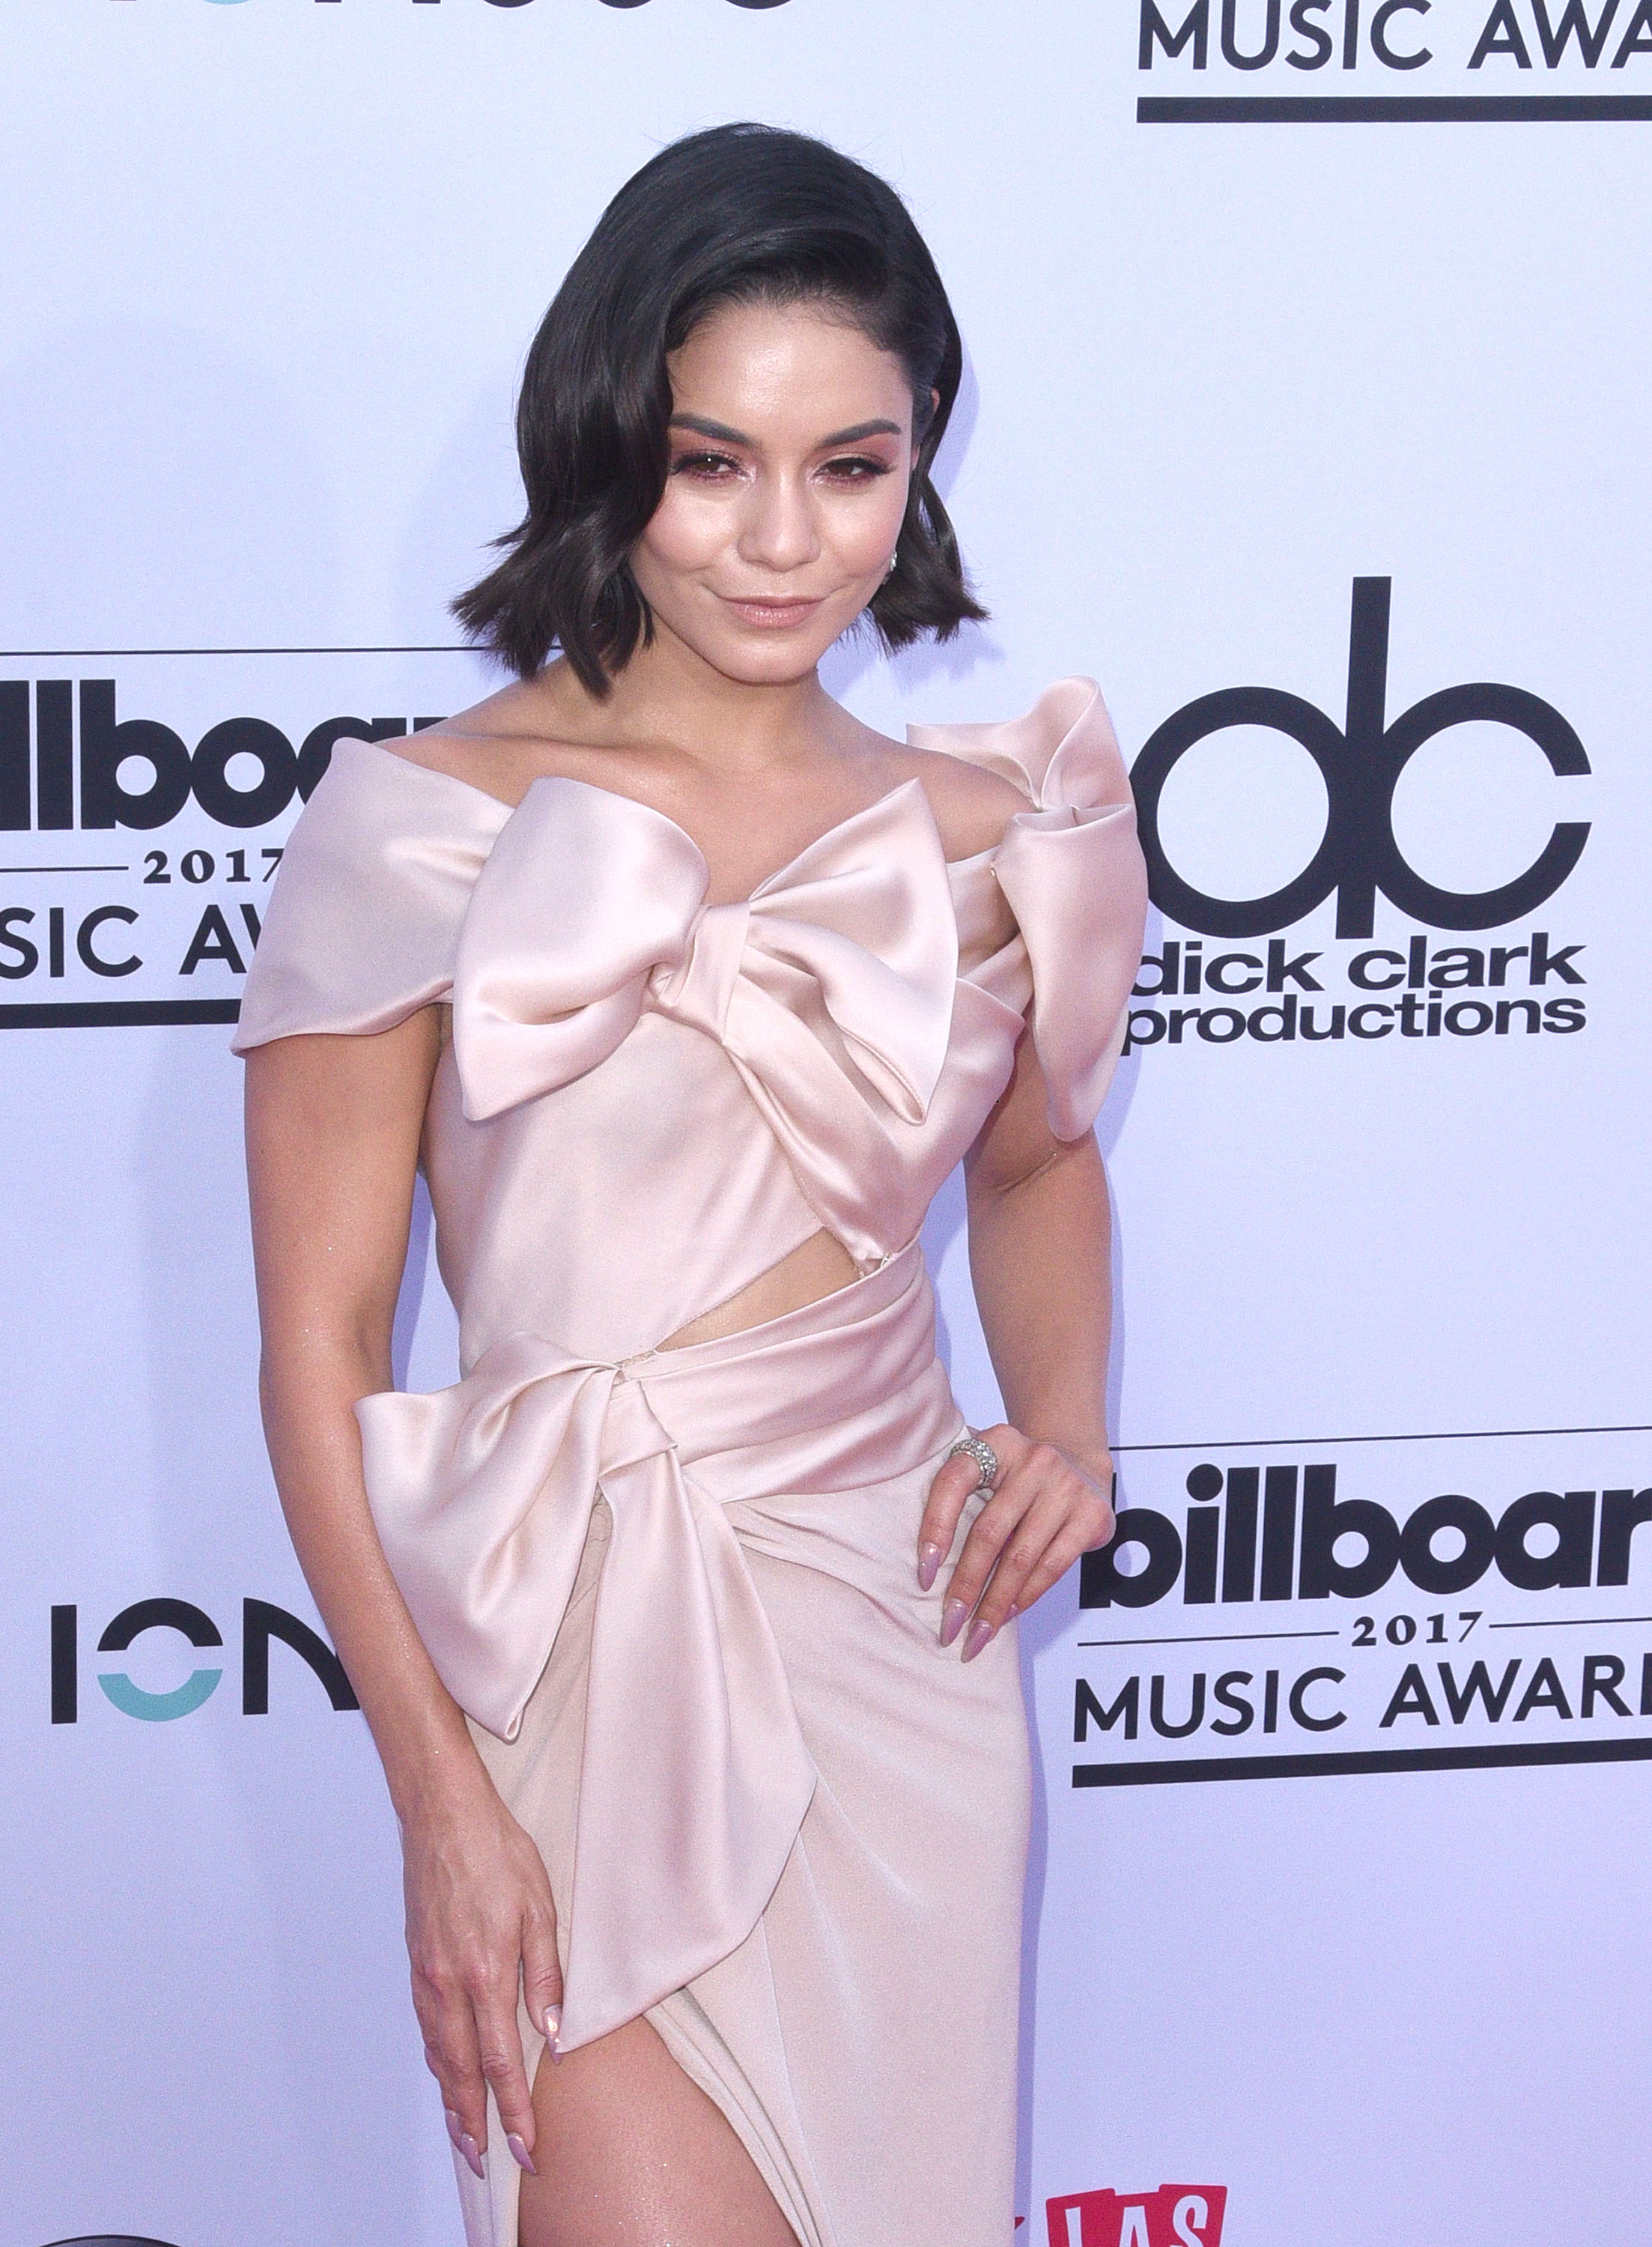 vanessa hudgens will be a judgen on so you think you can dance